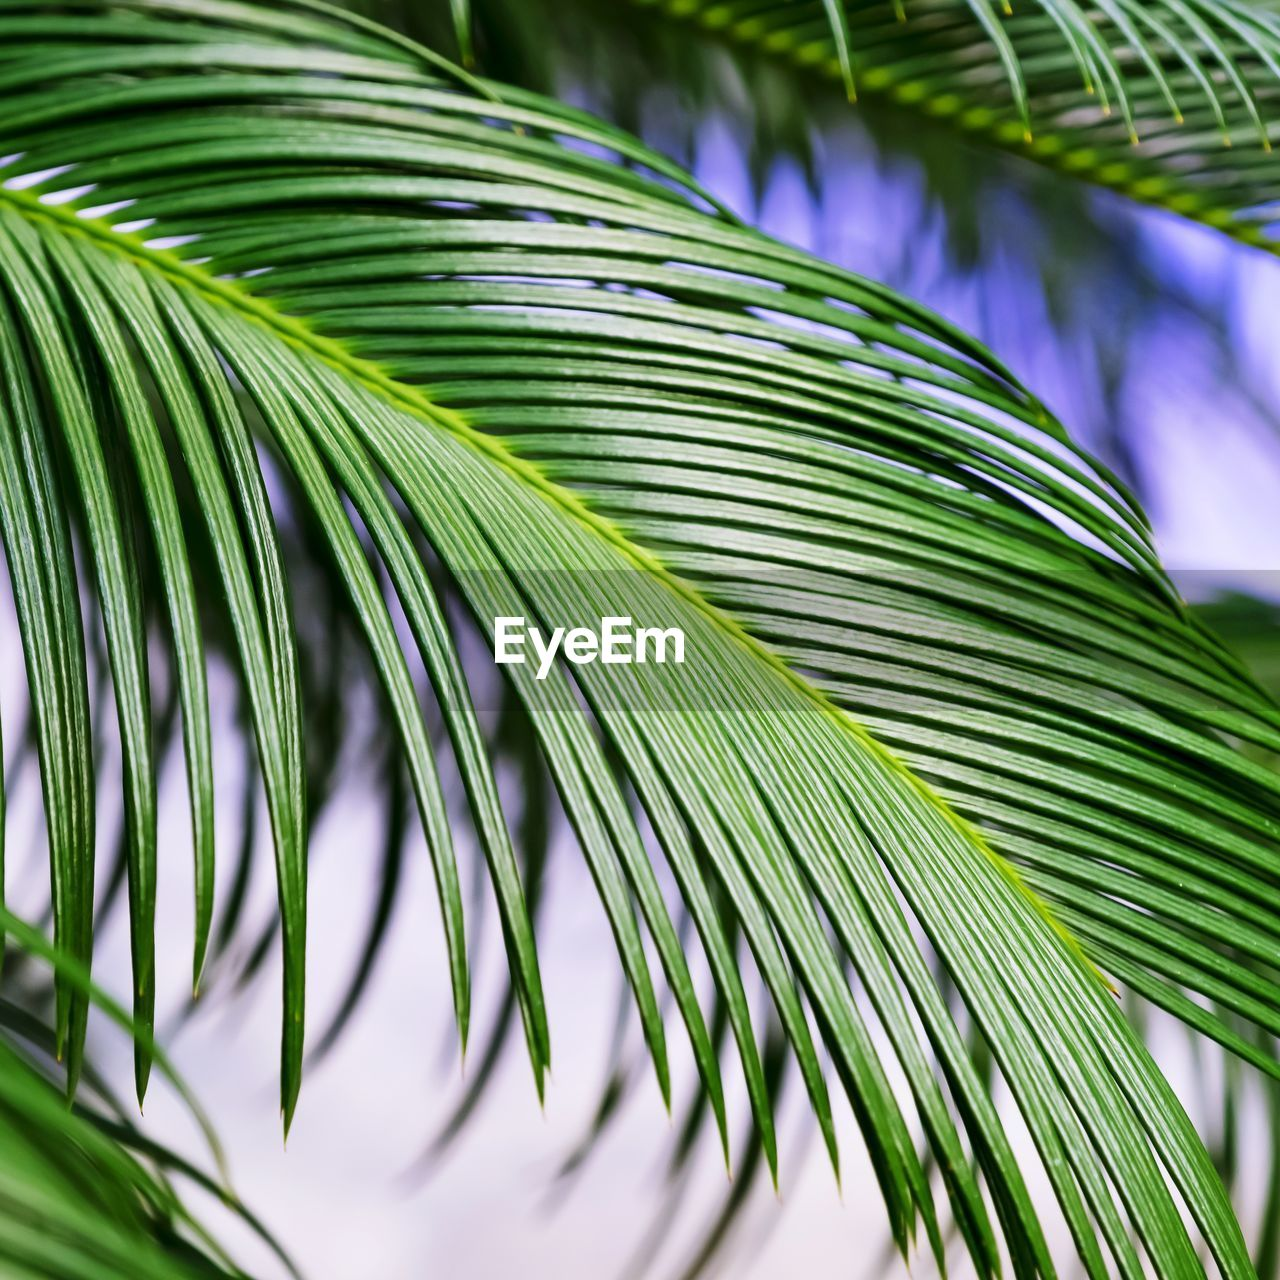 CLOSE-UP OF PALM LEAVES AGAINST SKY